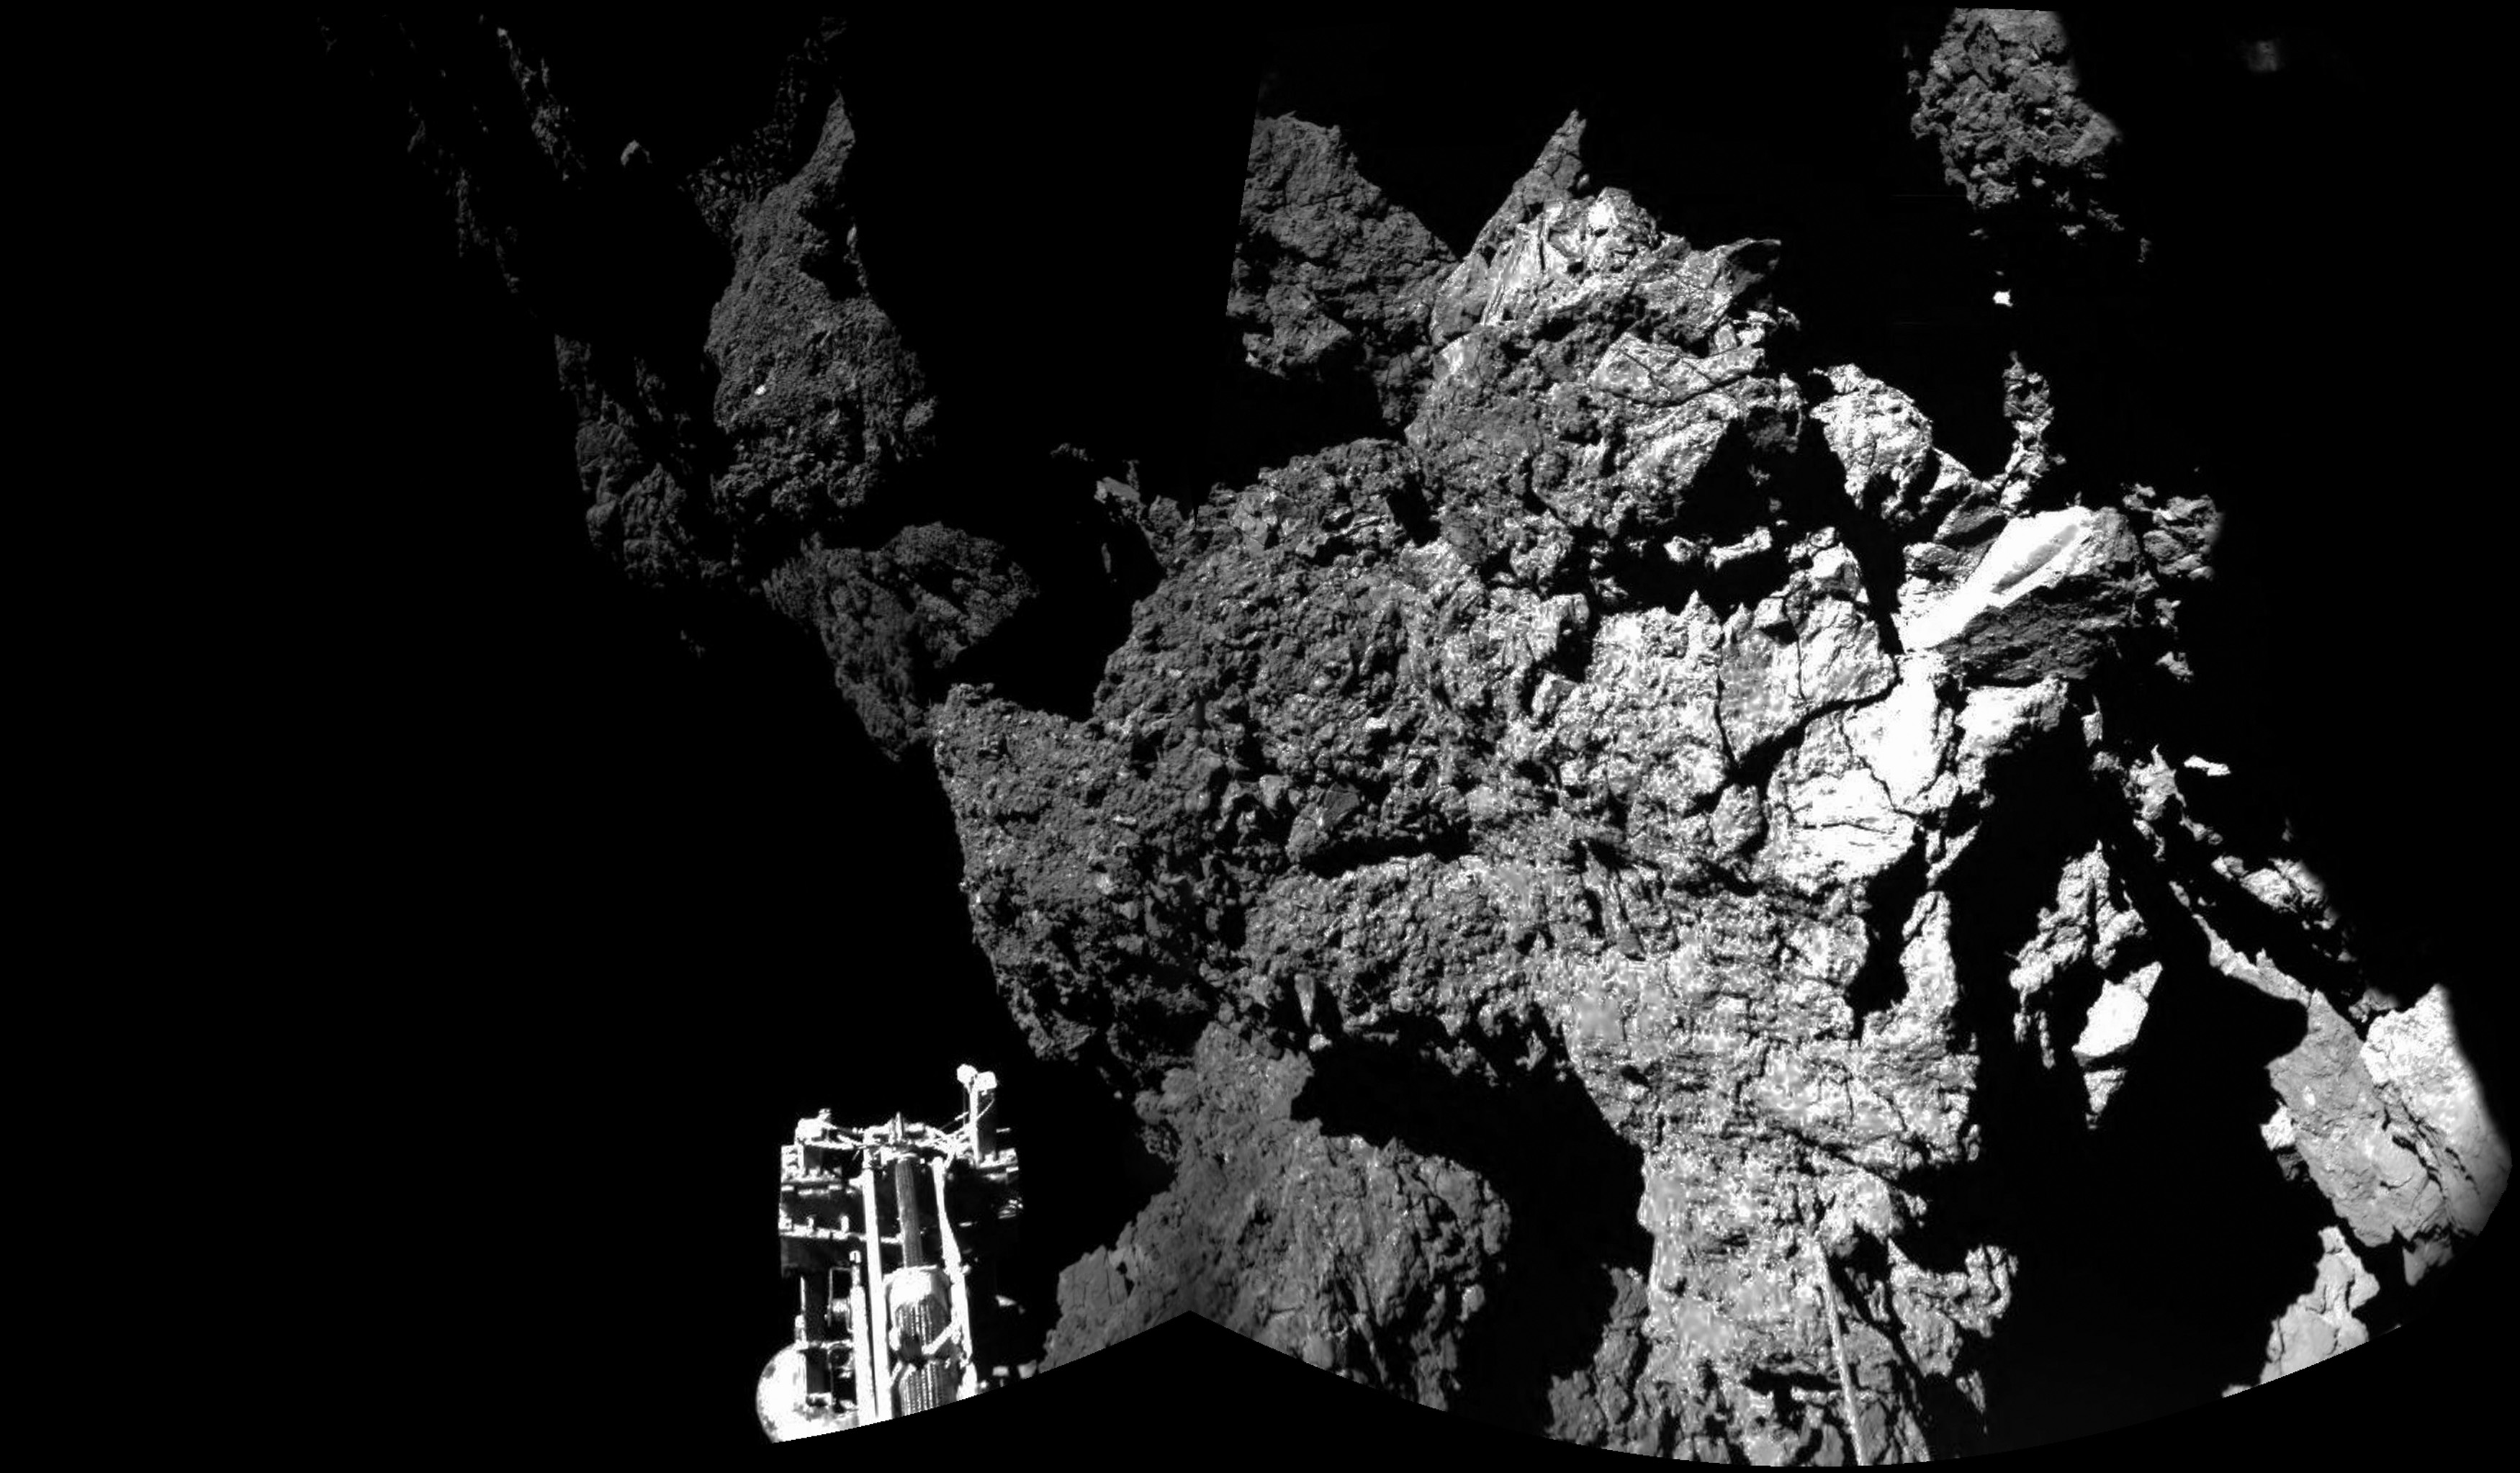 The surface of the 67P/Churyumov-Gerasimenko comet as seen from the Philae lander.